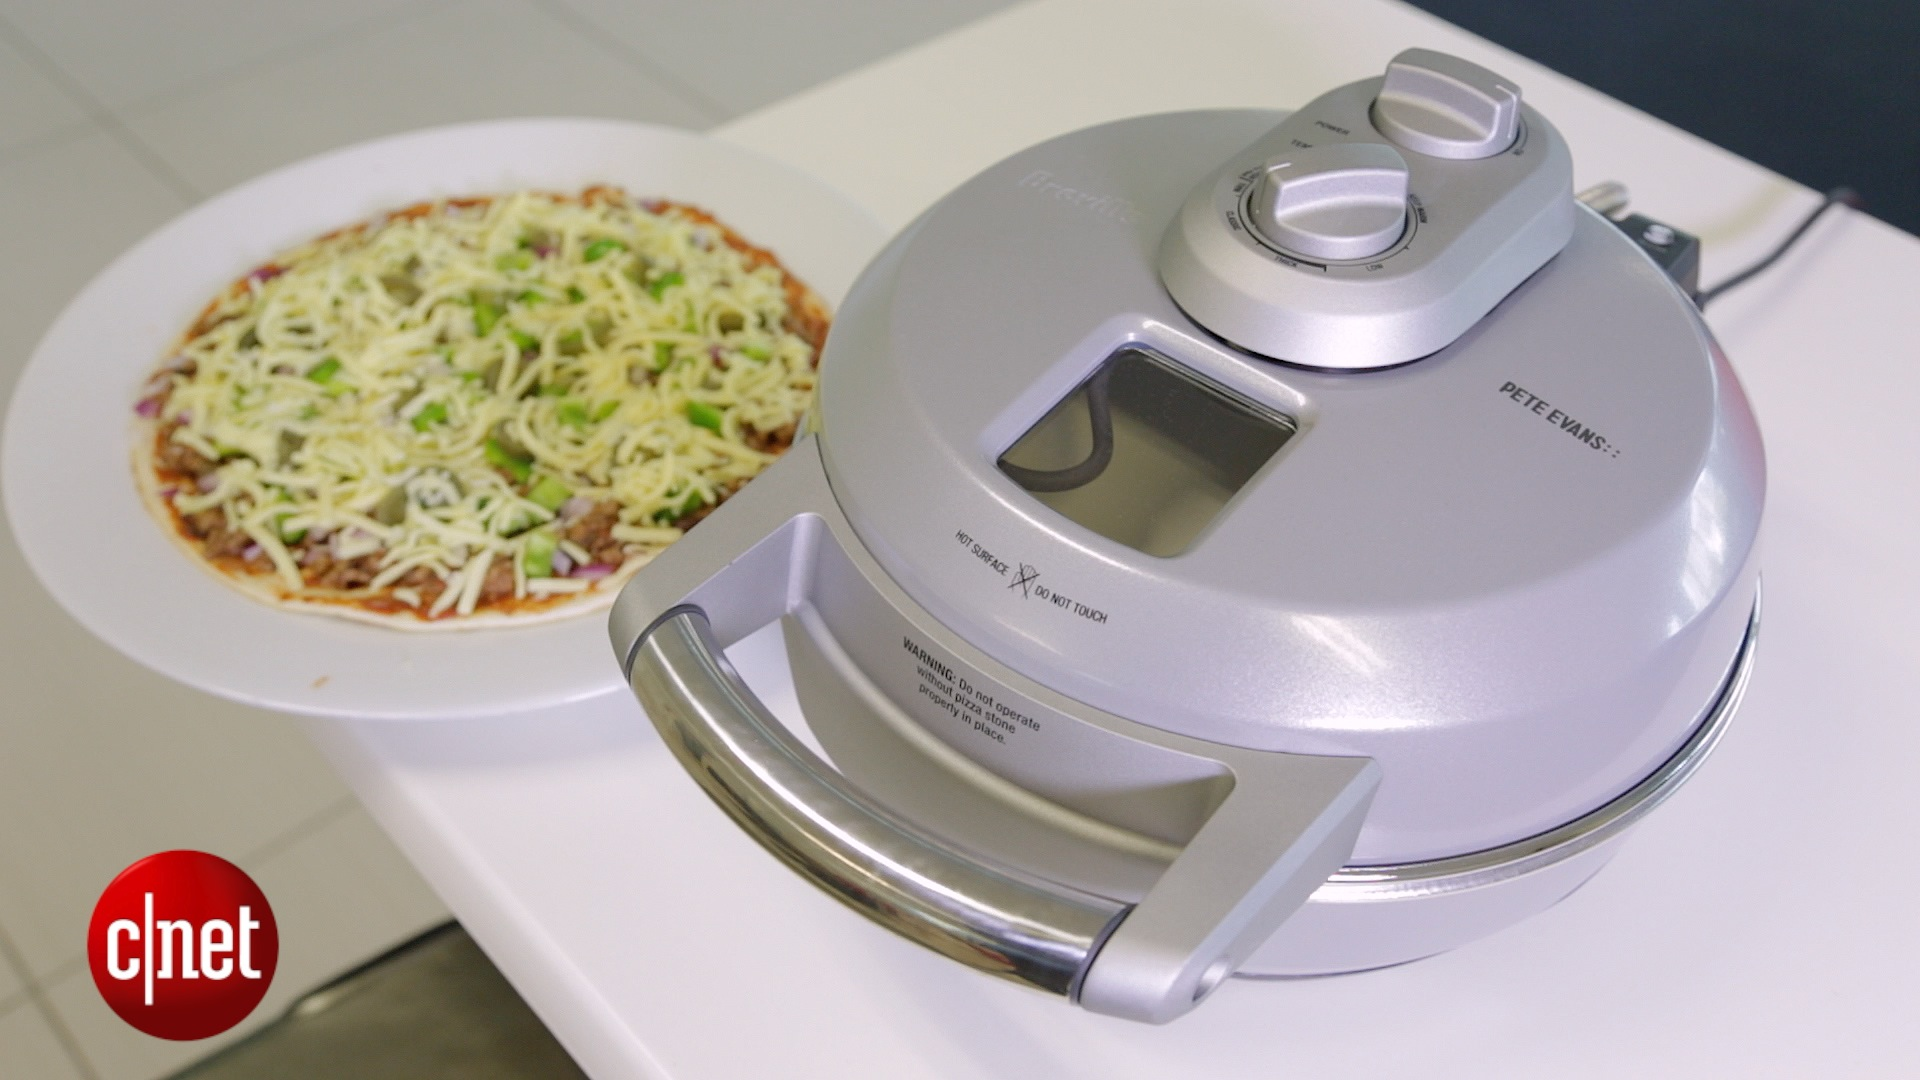 Video: Breville BPZ600 pizza oven